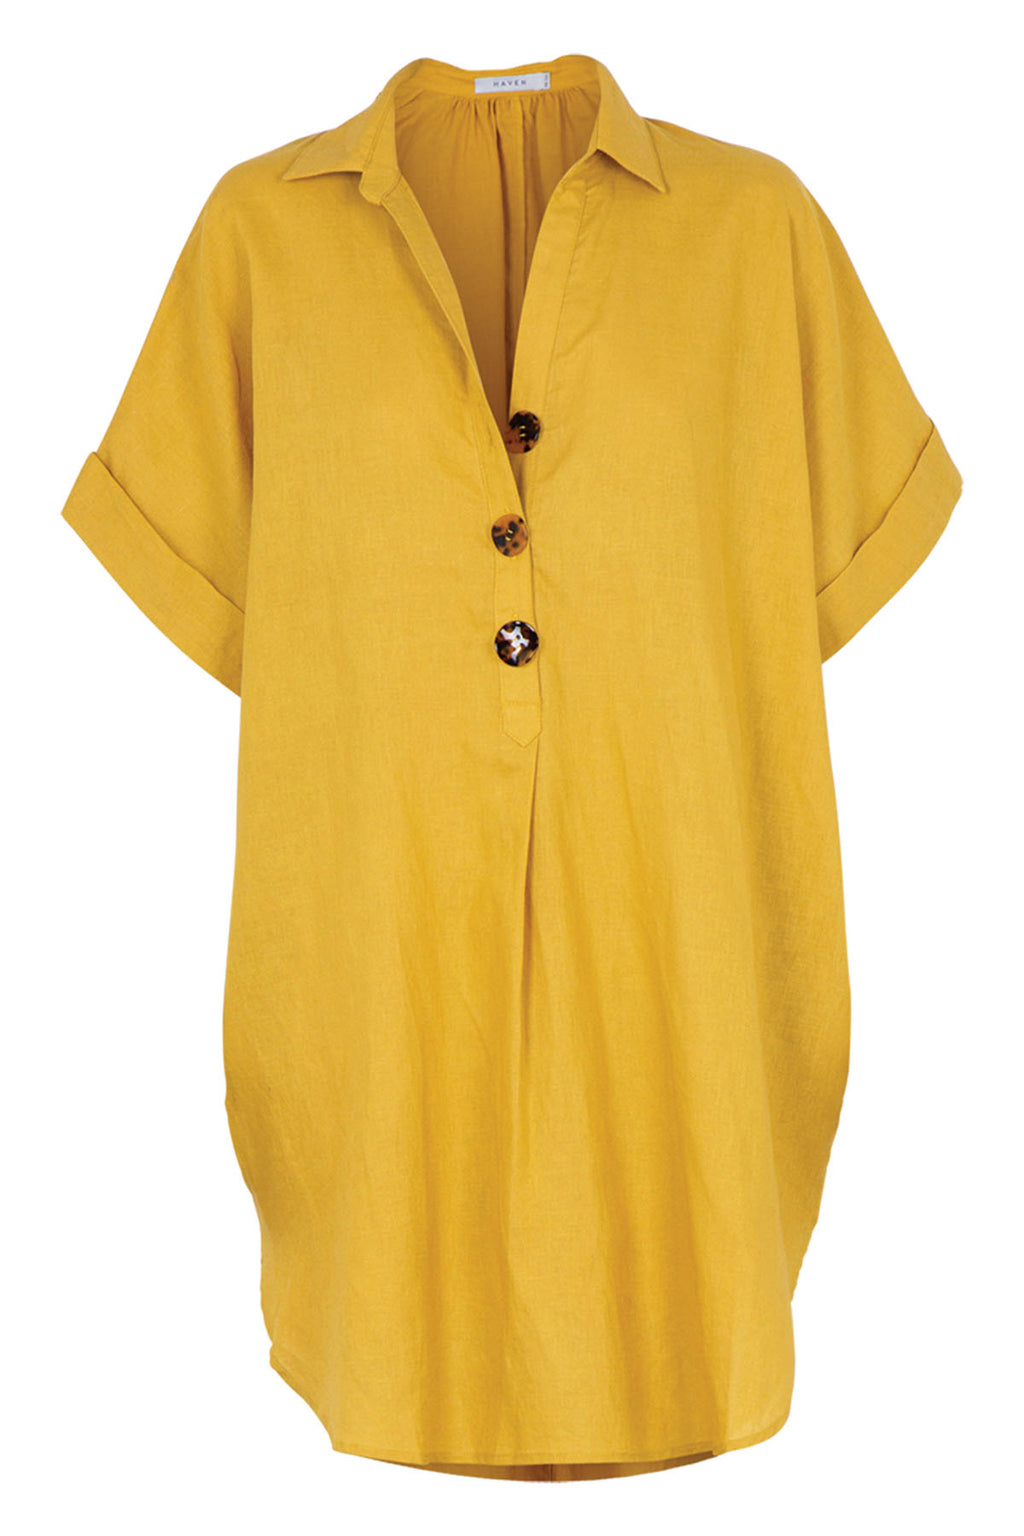 Puglia Shirt Dress - Saffron - The Bohemian Corner